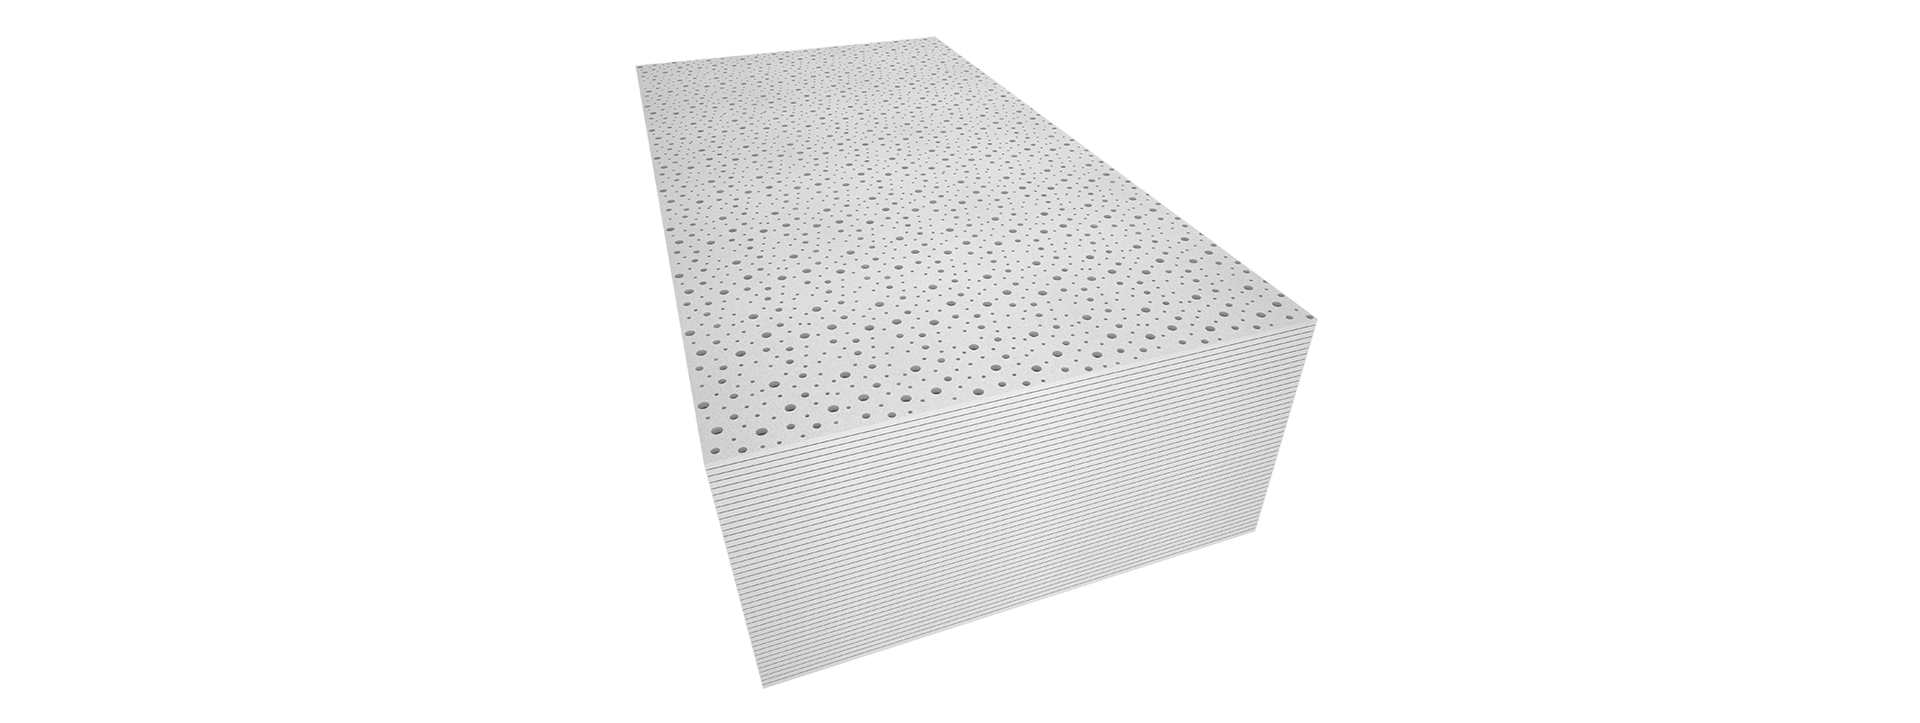 Perforated acoustic gypsum plaster board i trusus brand